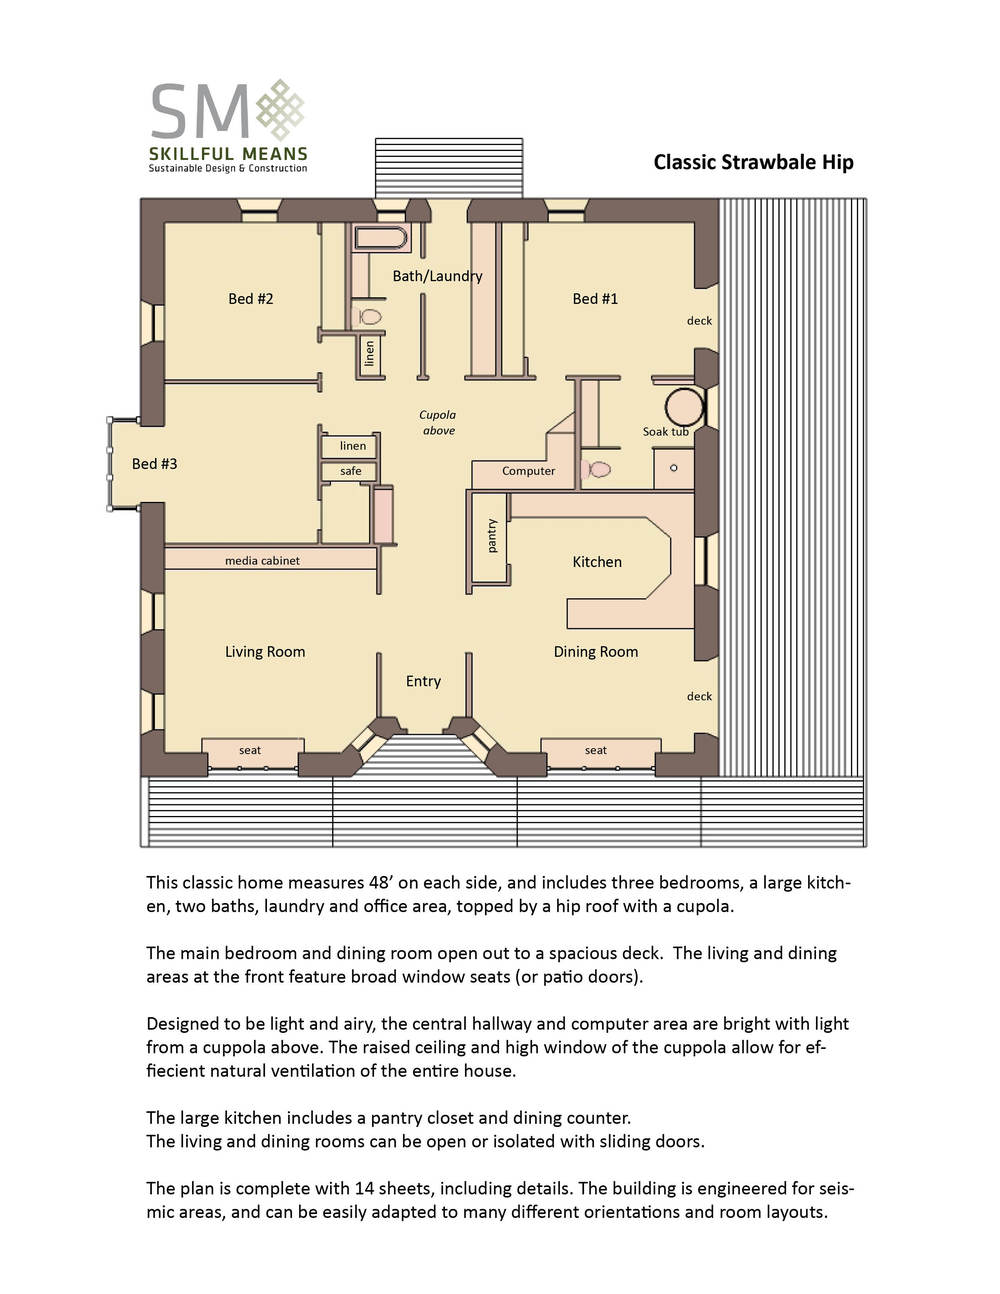 Classic square house plan skillful means design build for Classic homes floor plans